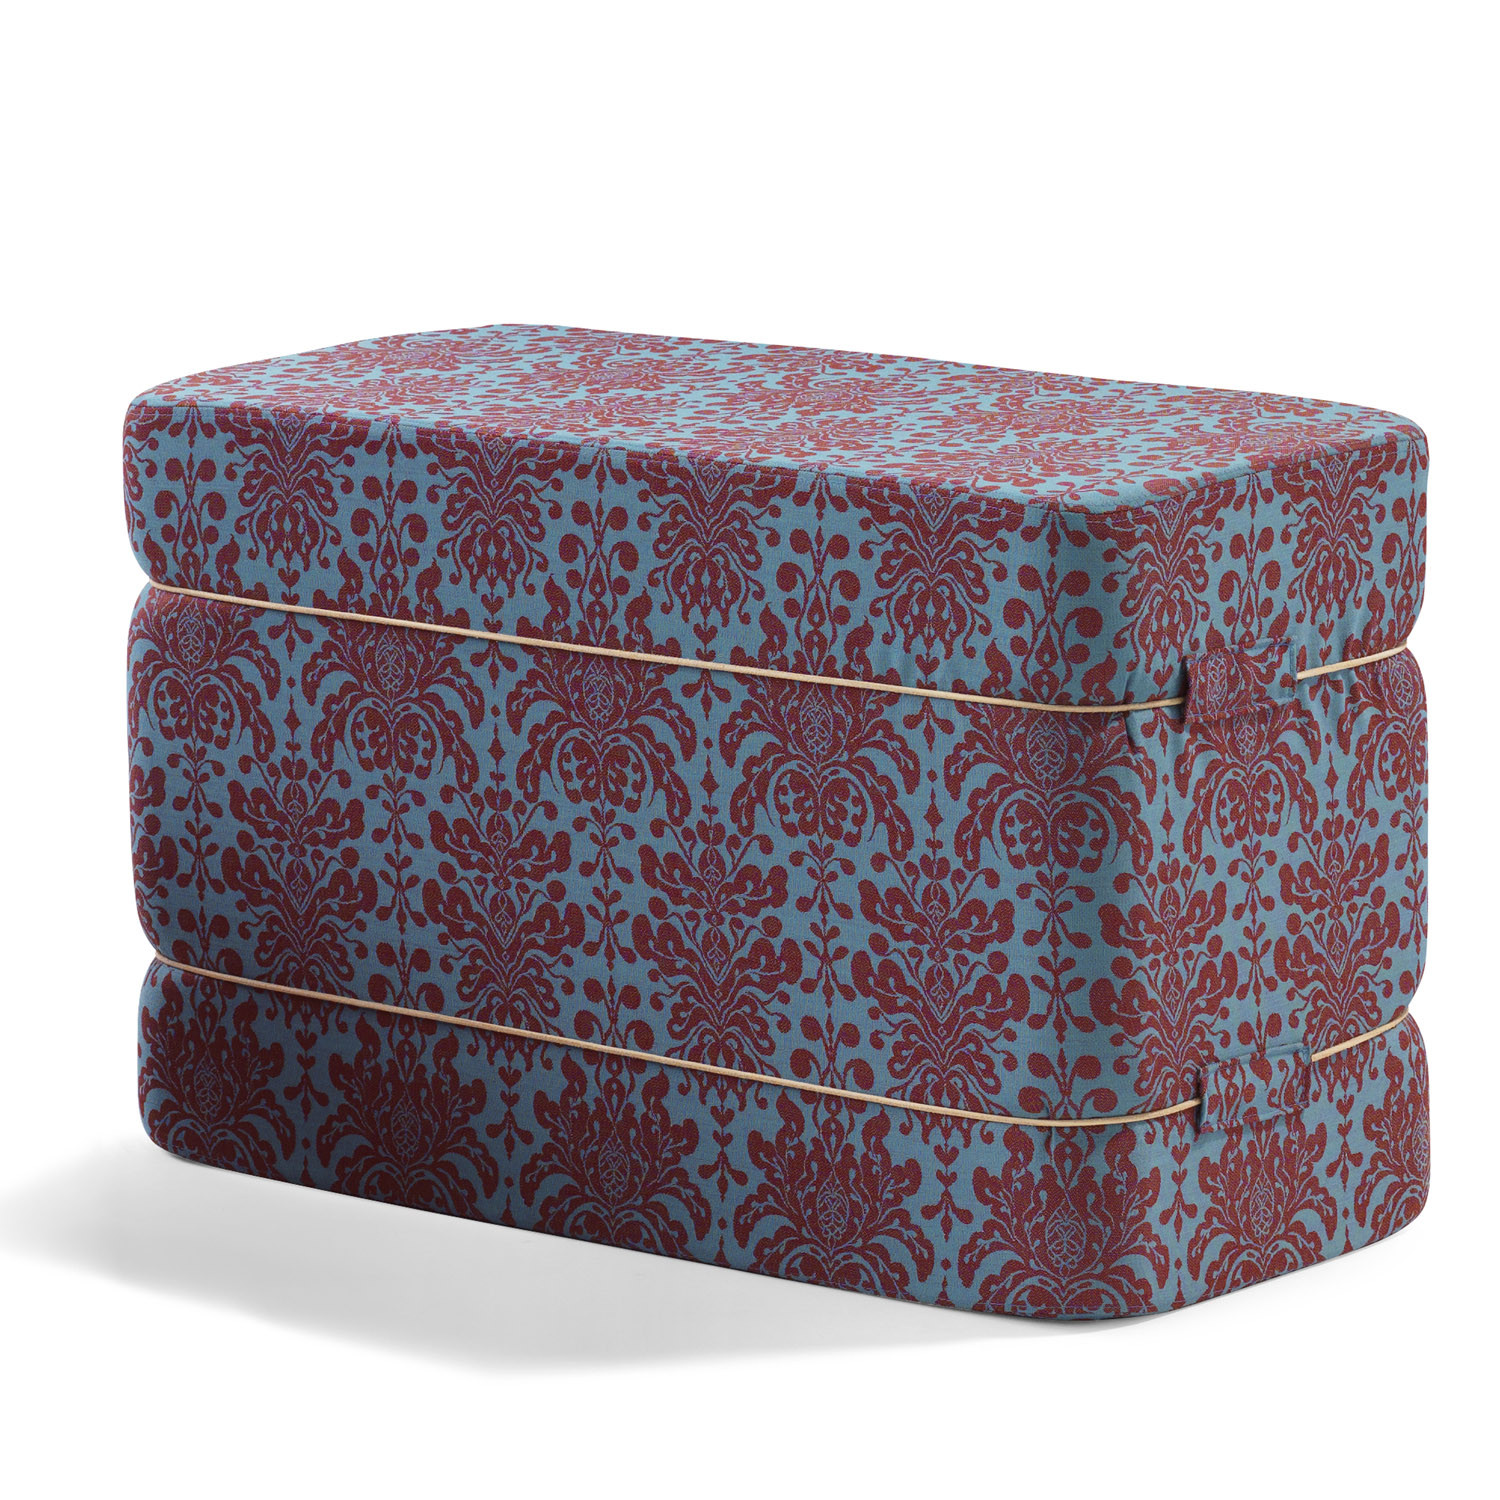 PM A11 Ottoman for lounges